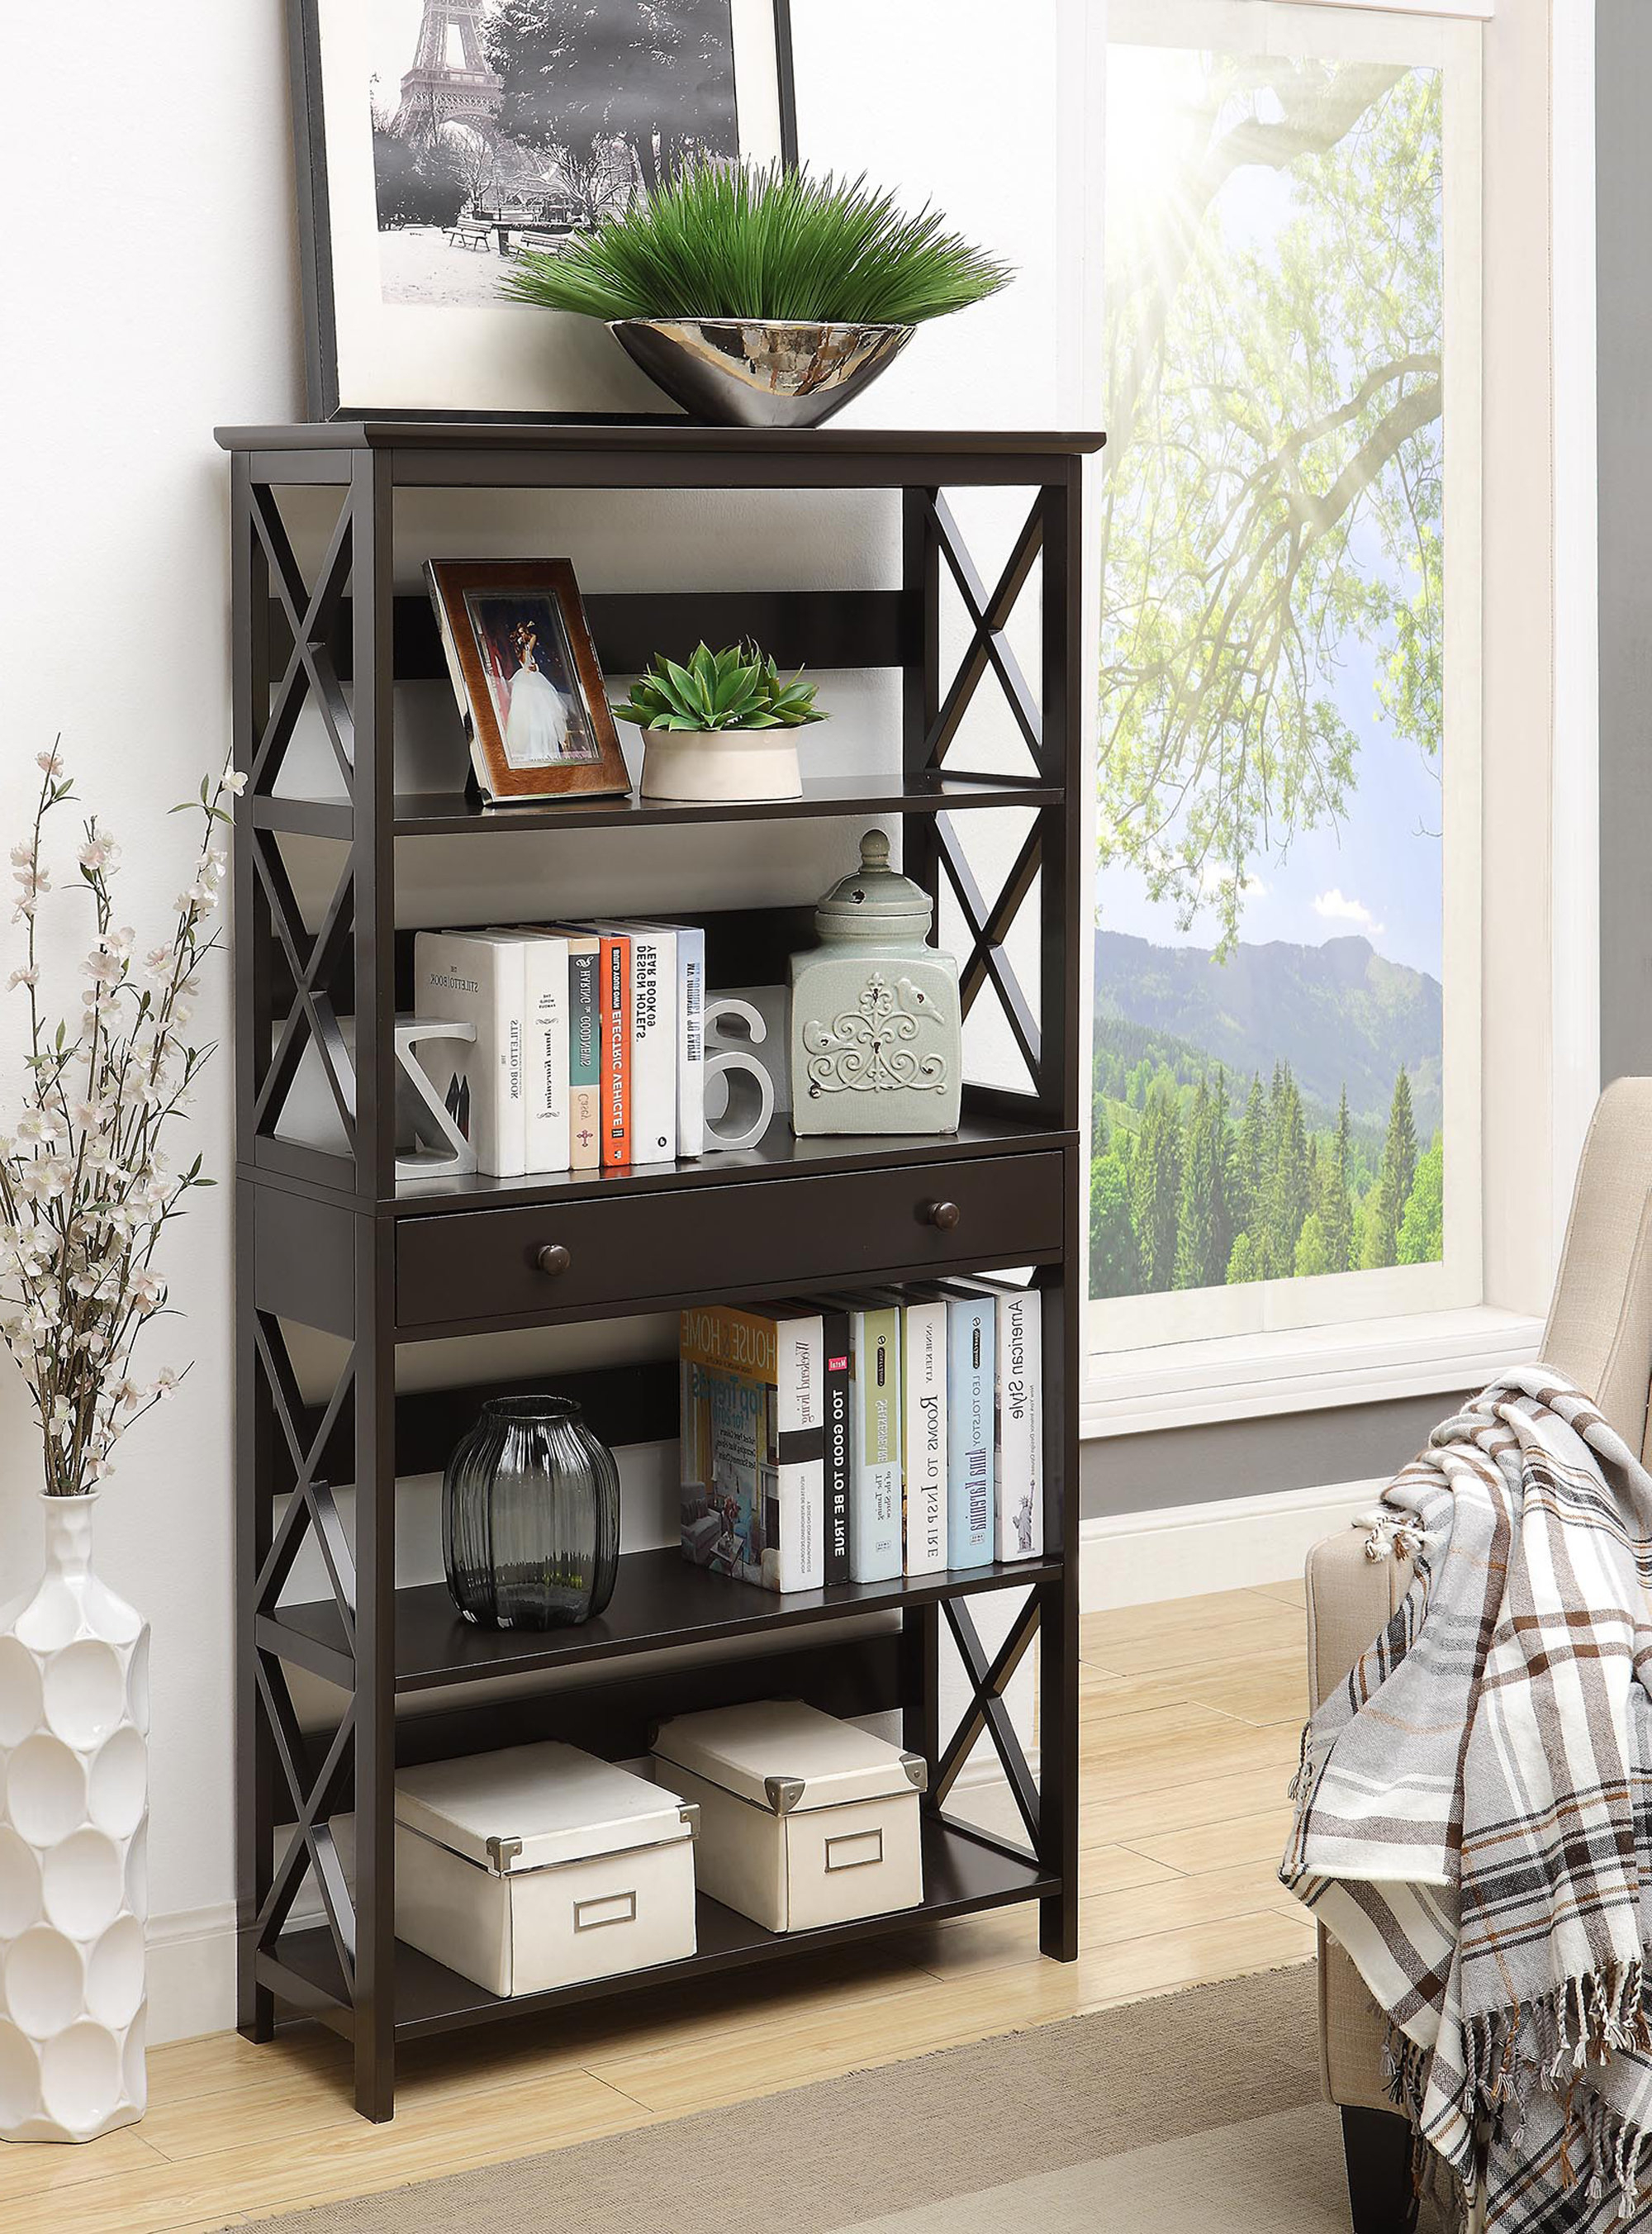 Gracelynn 5 Tier Etagere Bookcases Intended For Best And Newest Gracelynn 5 Tier Etagere Bookcase (View 11 of 20)